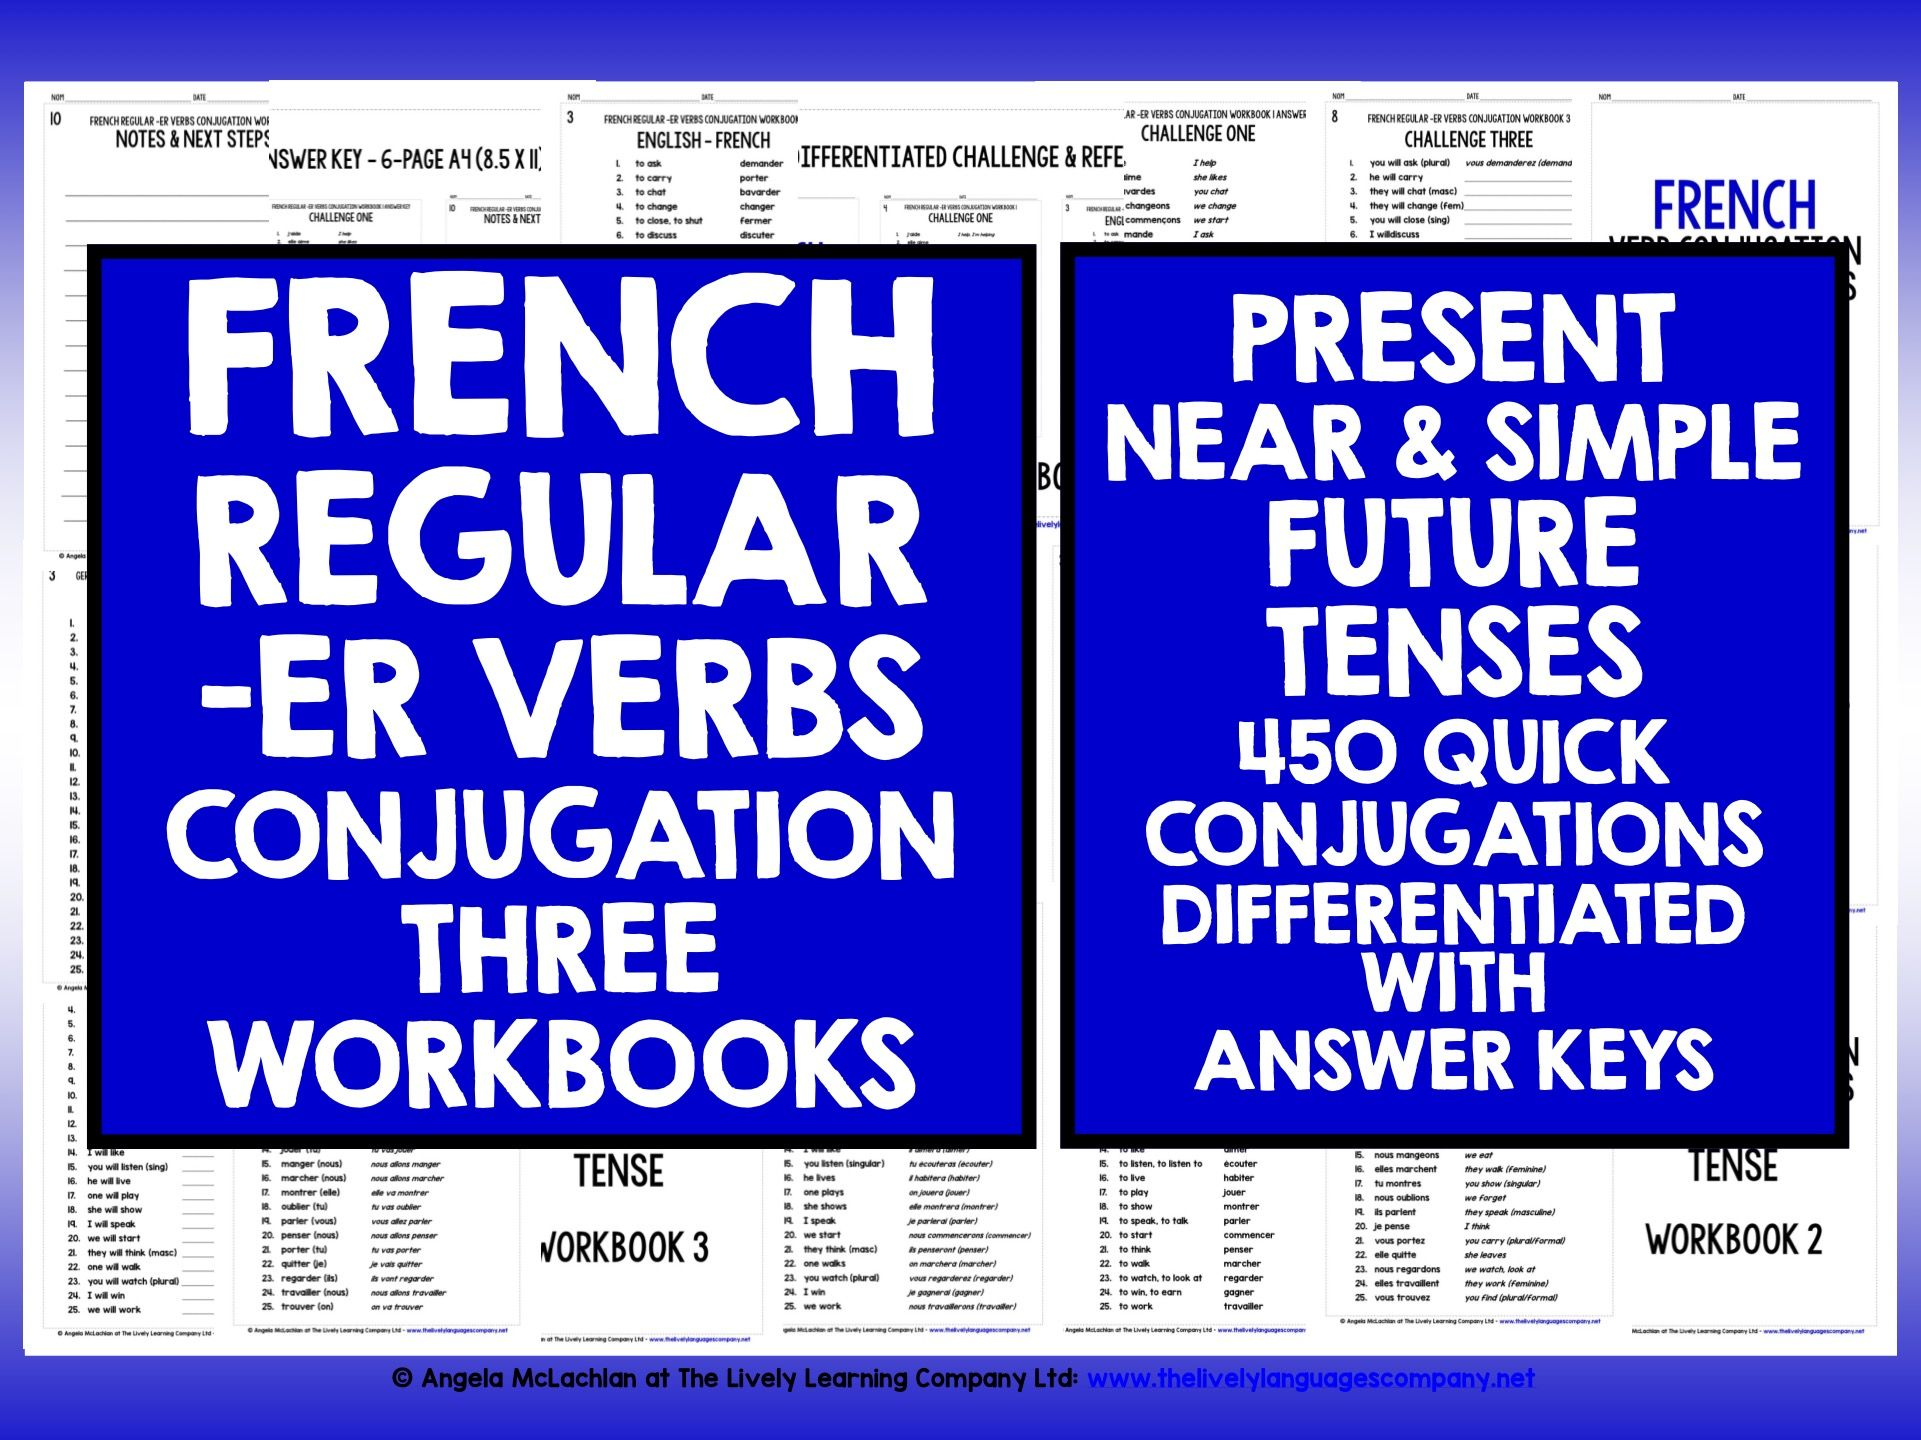 FRENCH -ER VERBS REVISION PRESENT, NEAR & SIMPLE FUTURE TENSE